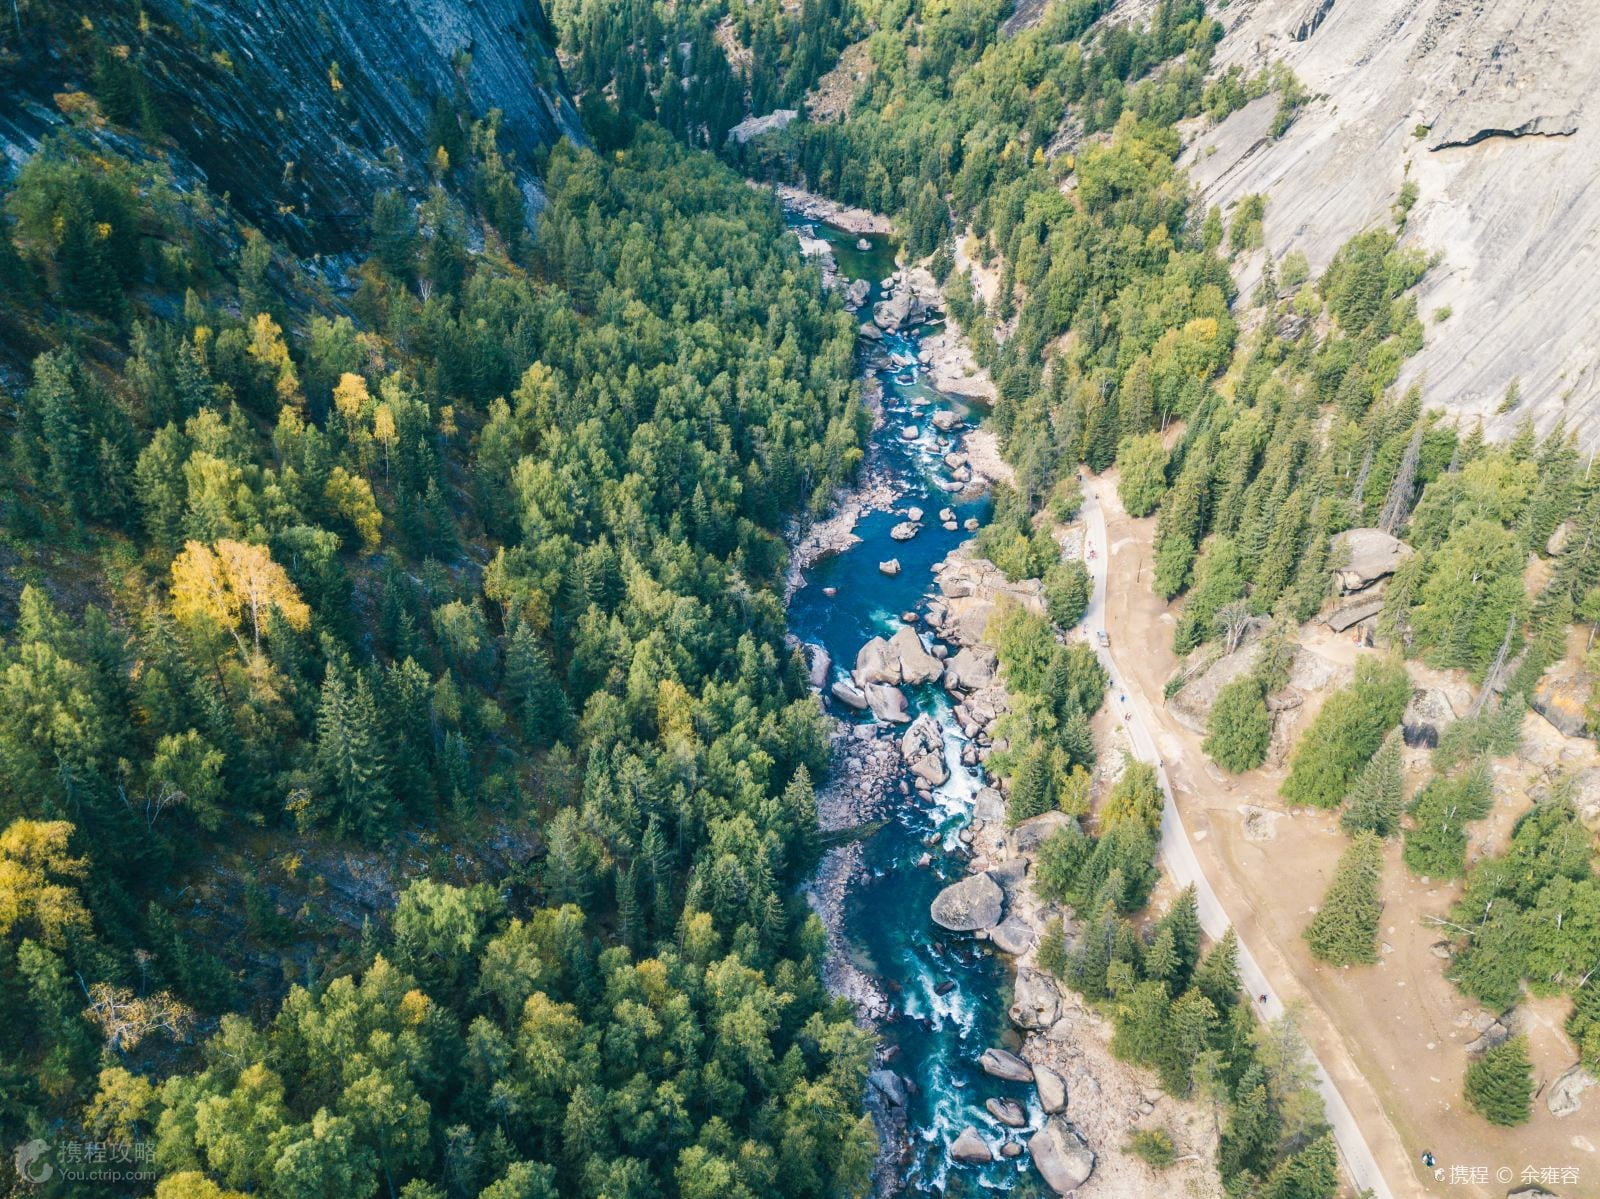 10 Most Beautiful Rivers in the World